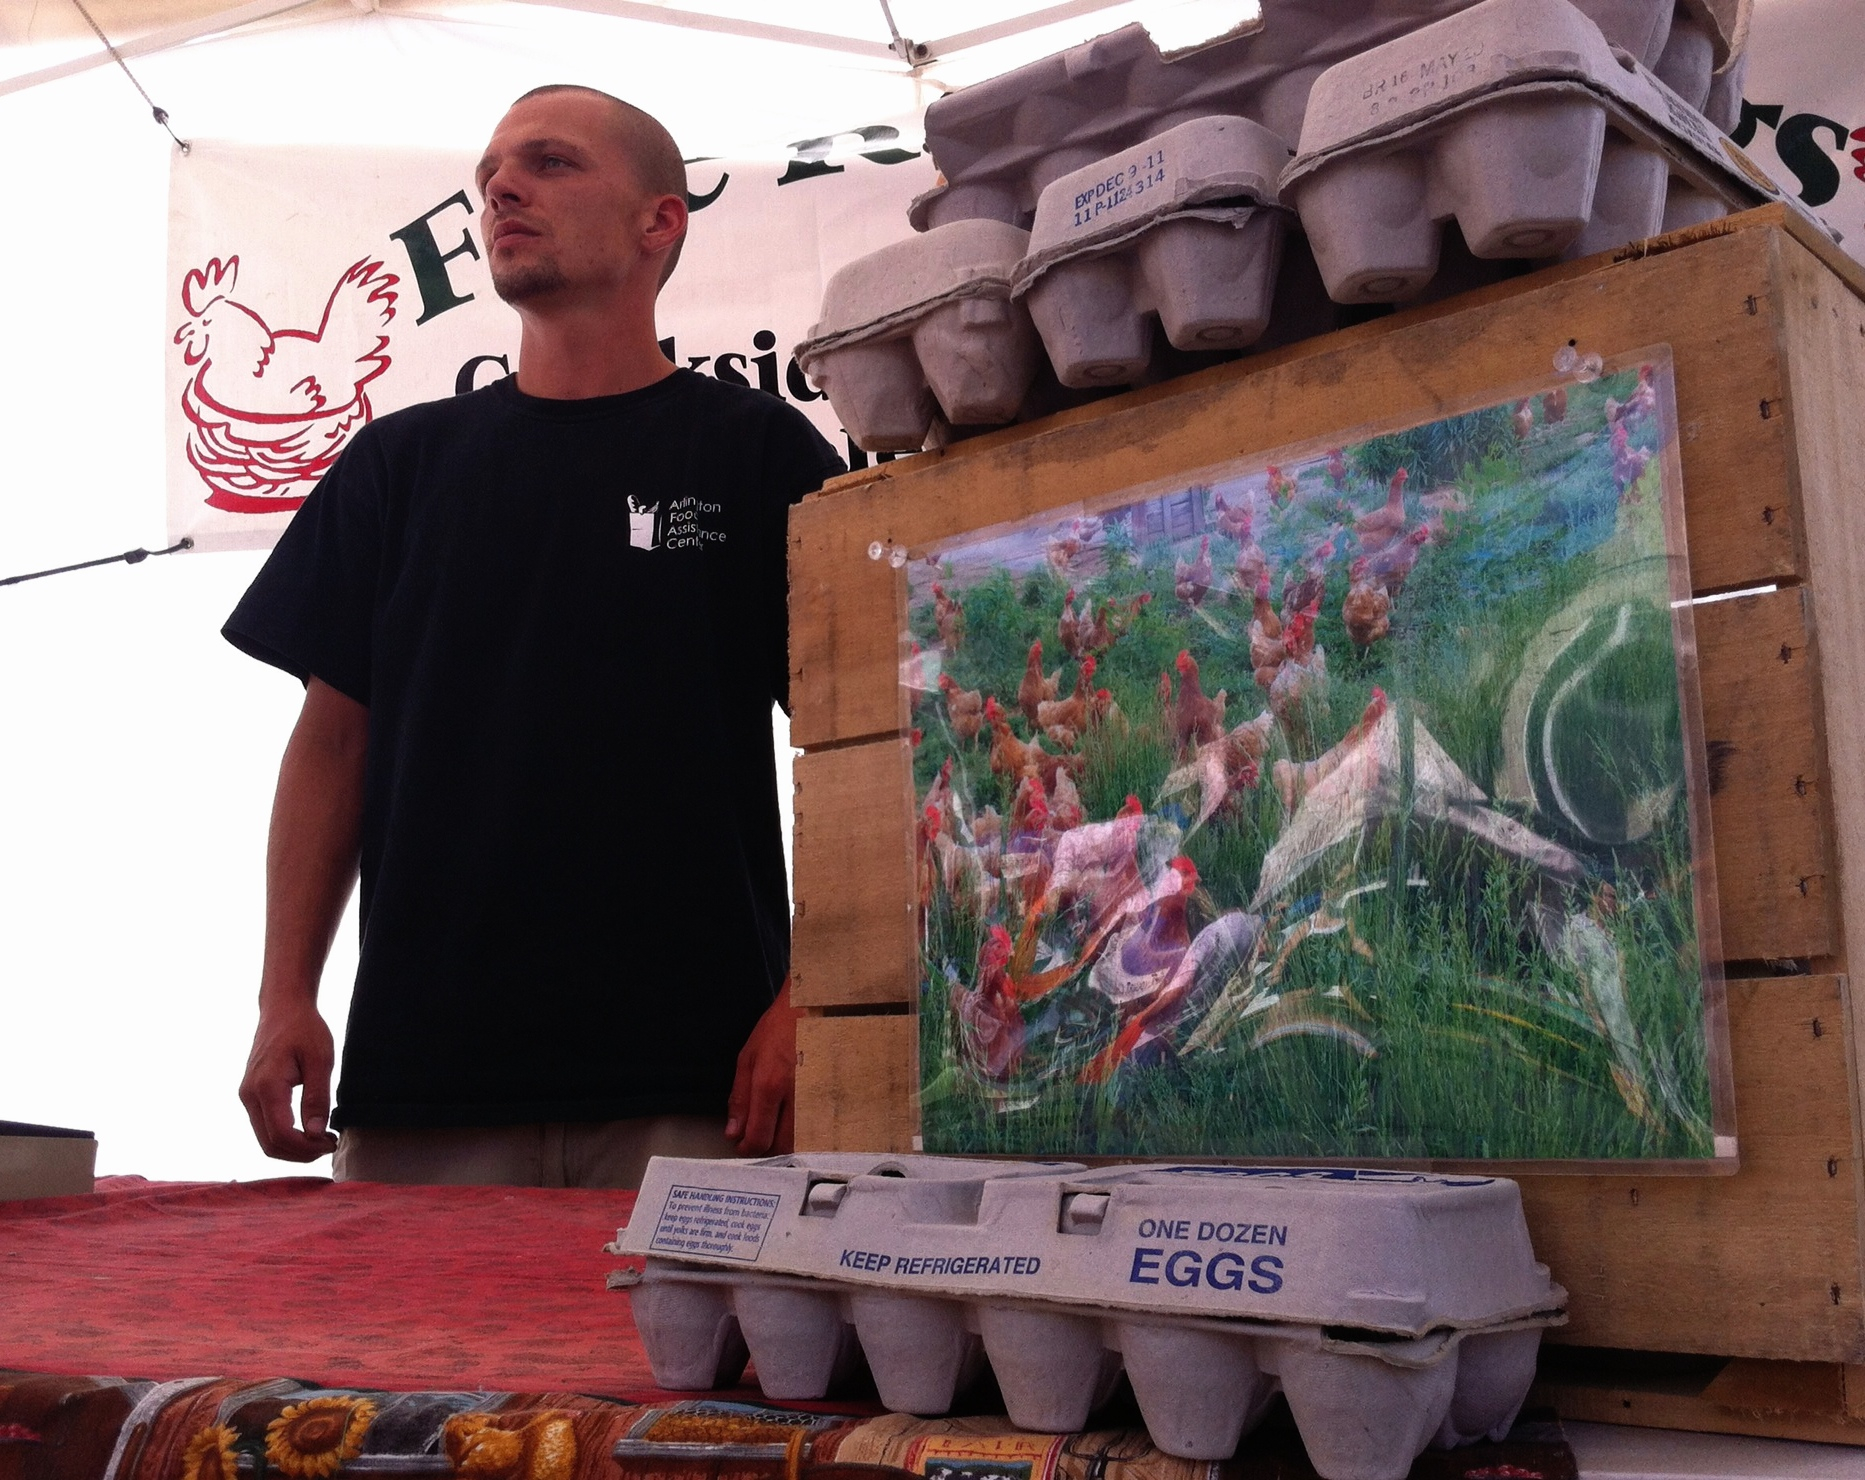 Tom Garver says Creekside Farm uses photos to communicate the value of free-range eggs. Photographed with my iPhone 4.